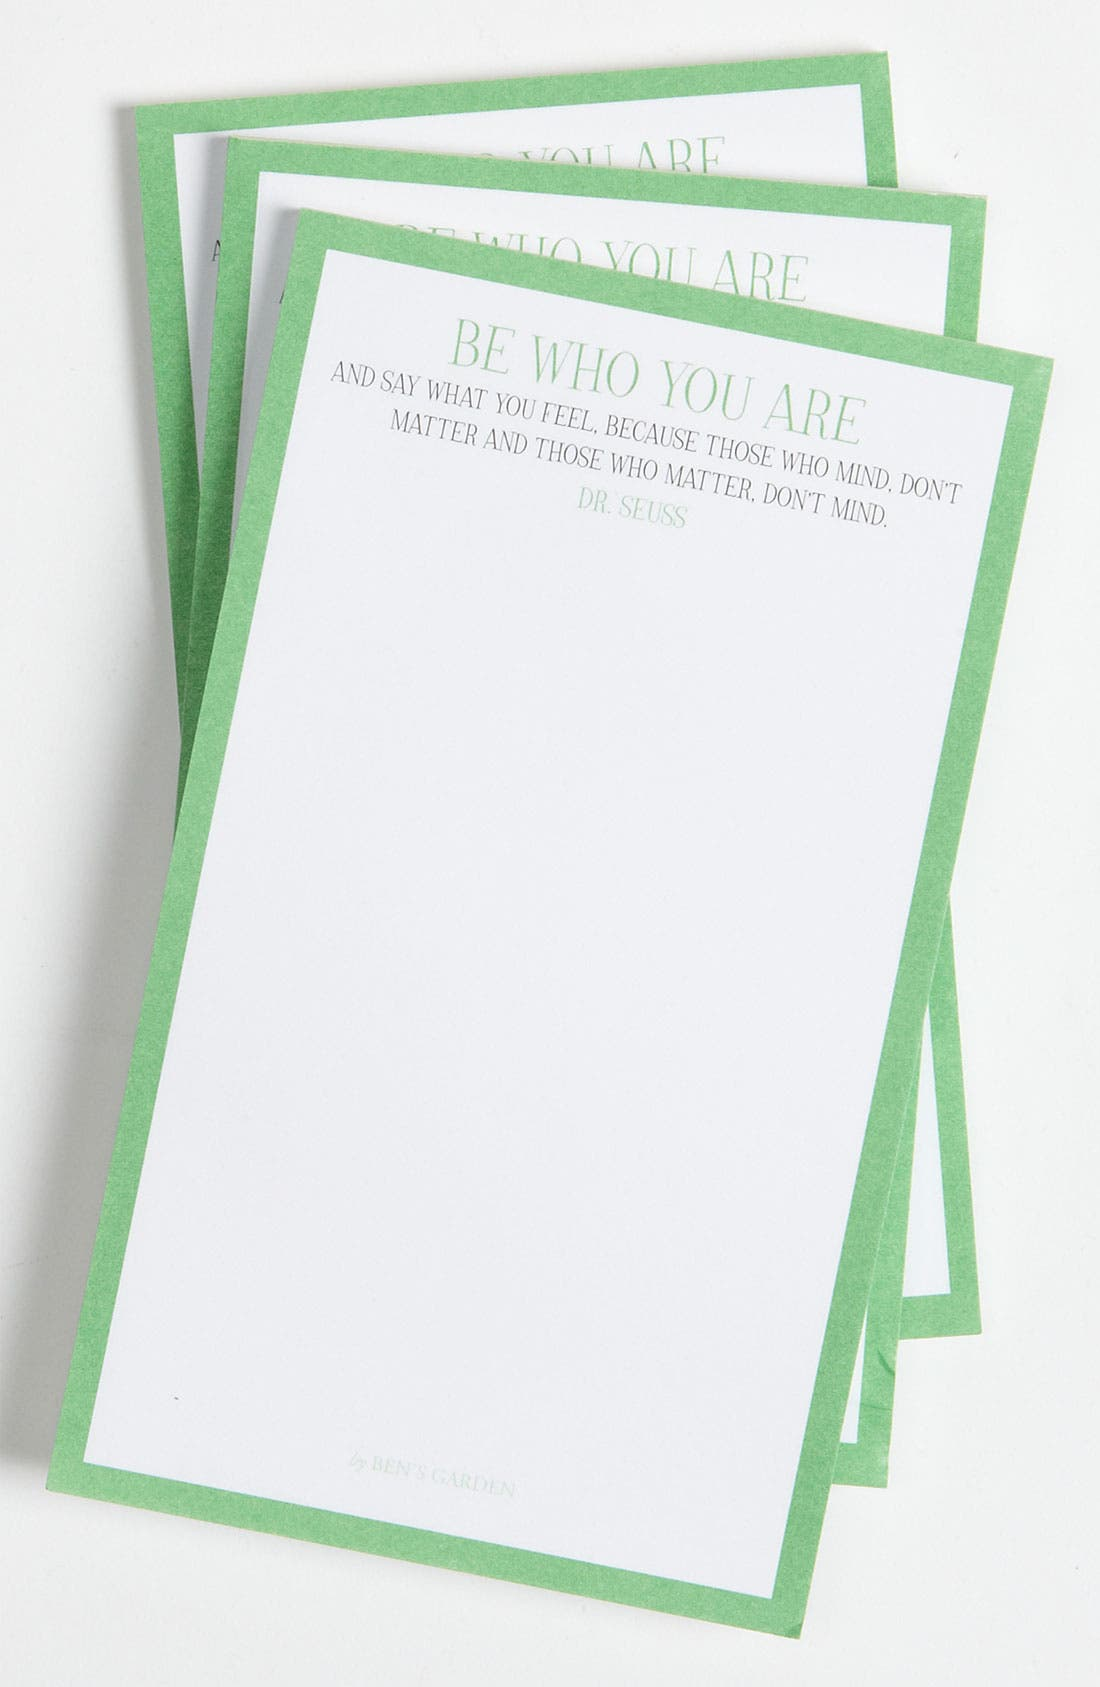 Alternate Image 1 Selected - Ben's Garden 'Be Who You Are' Notepads (3-Pack)